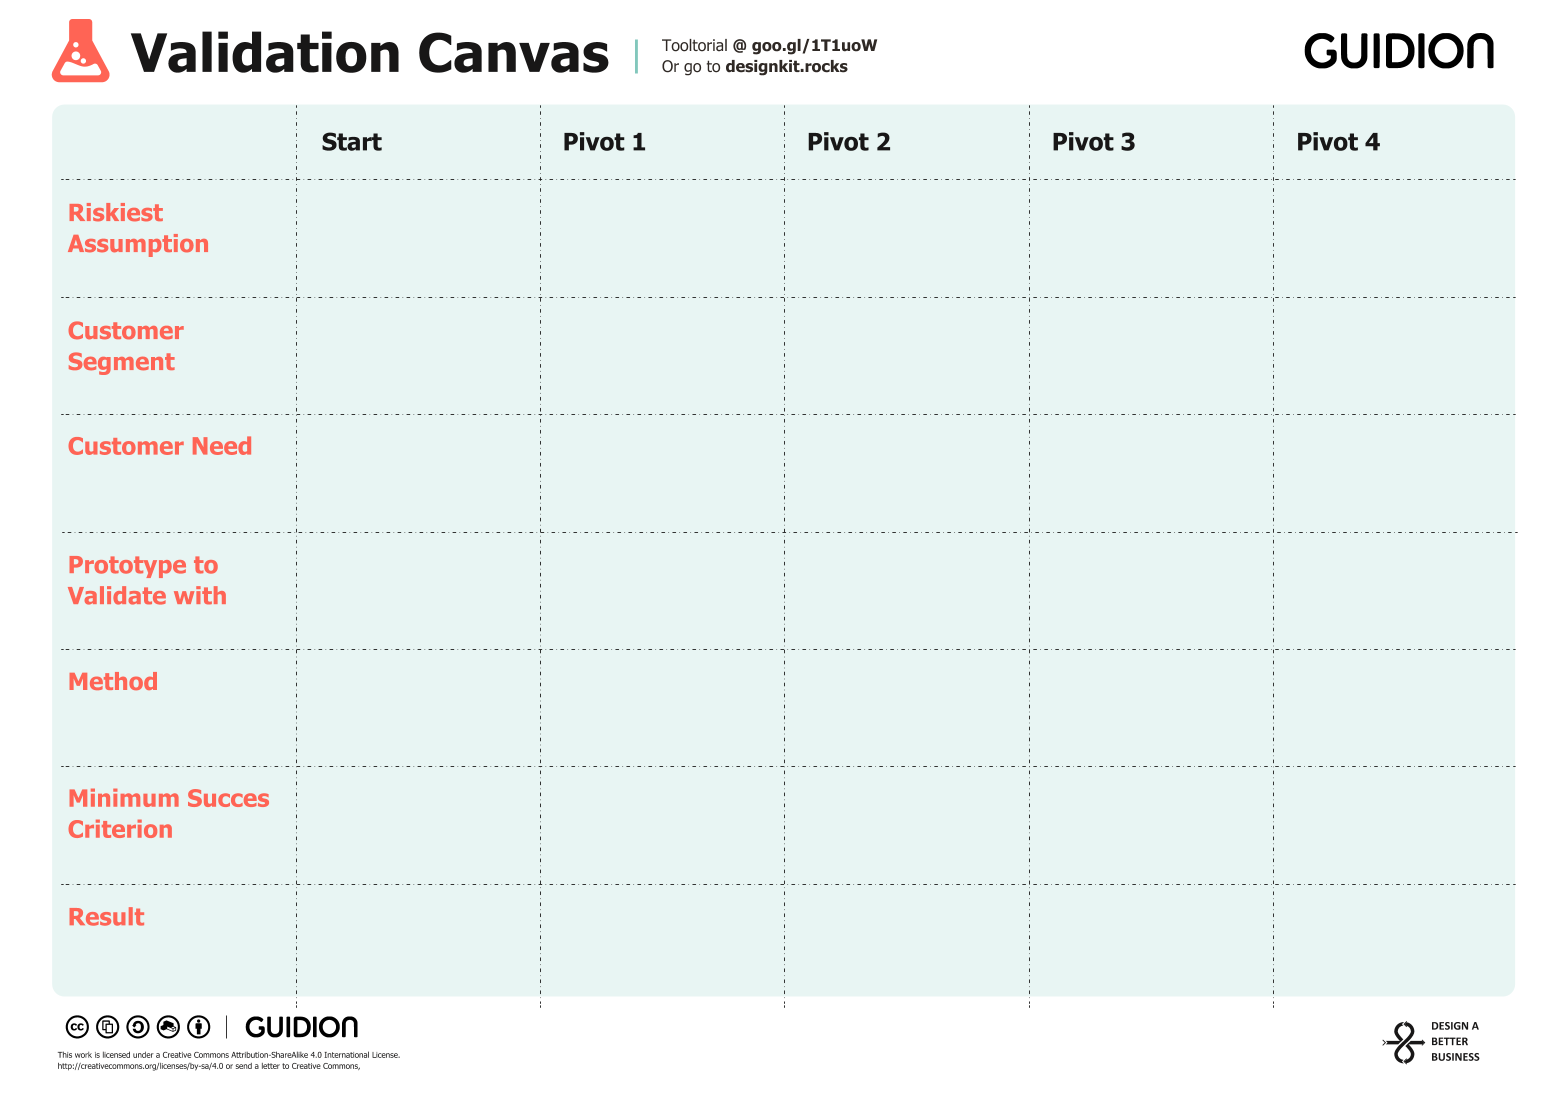 Validation Canvas